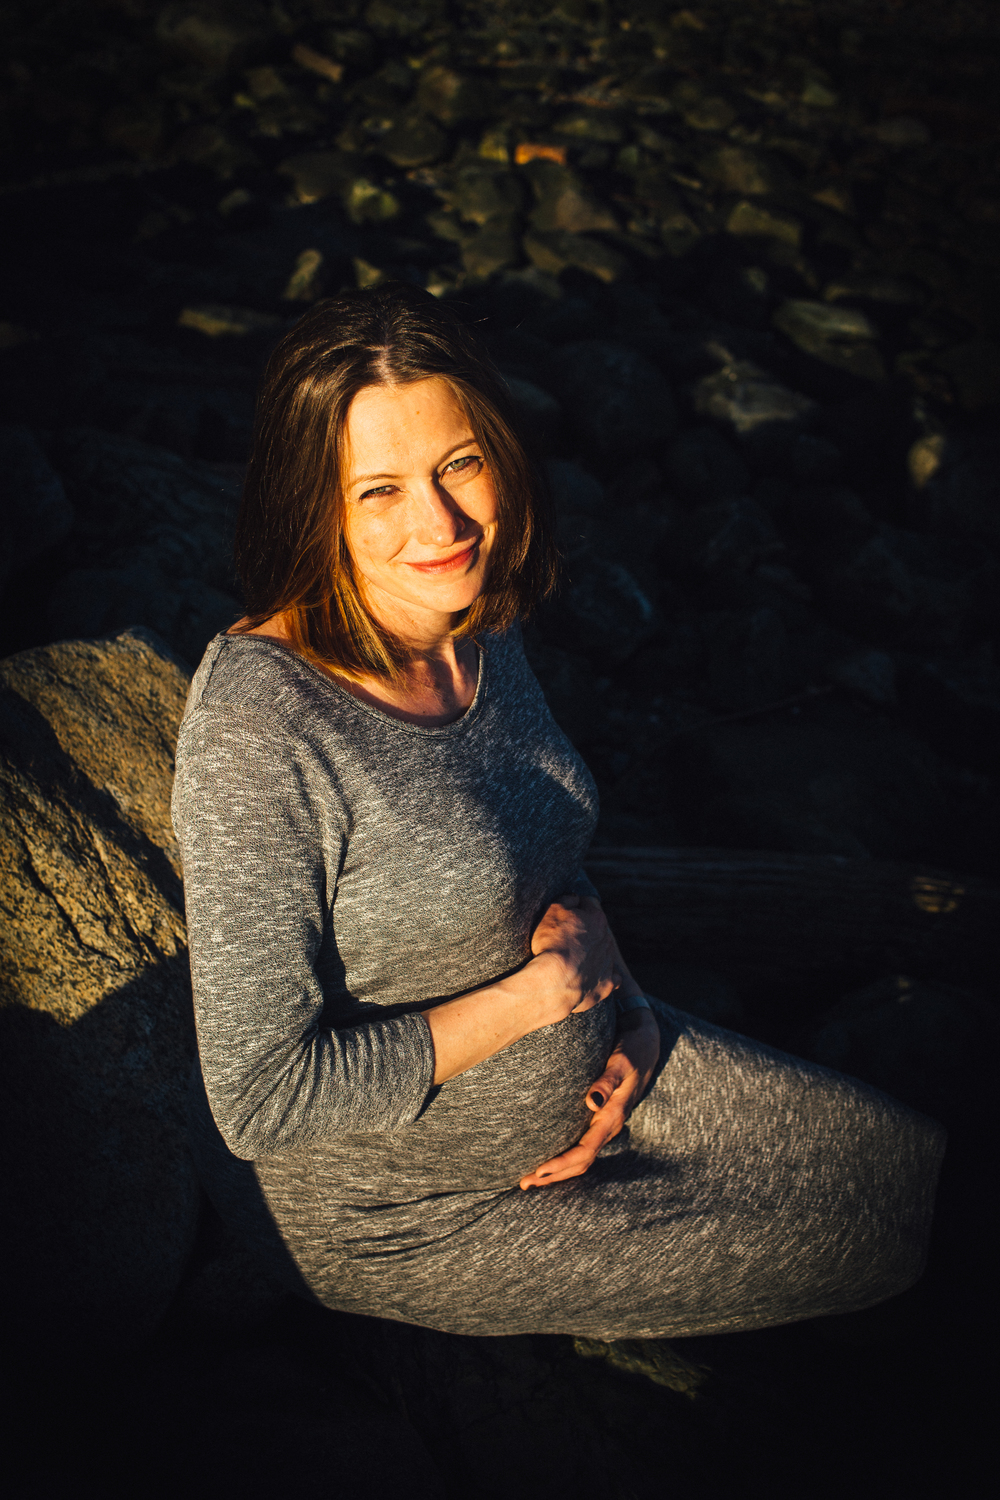 dogwoodphotography_photographer_vancouver_maternity_annemarierattray (13 of 44).jpg